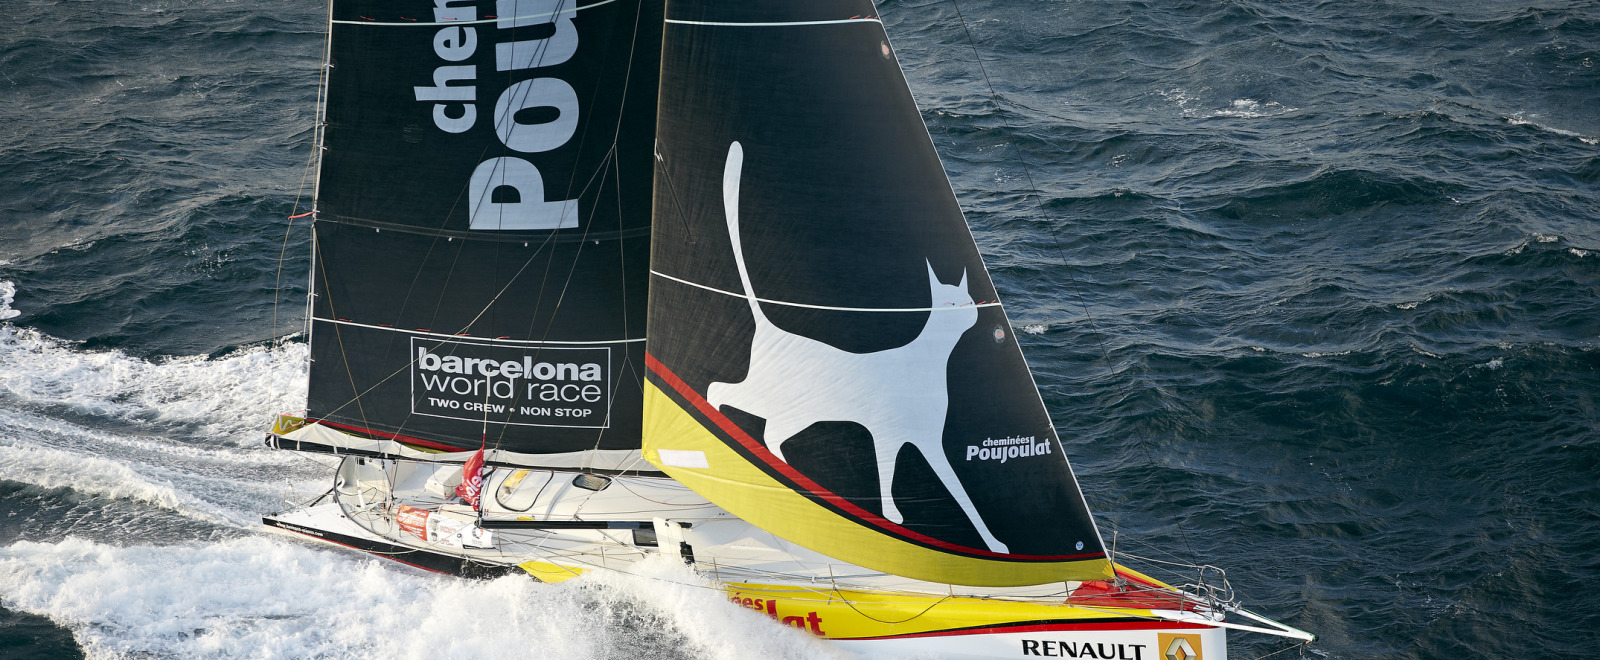 Actualités The Equator For Stamm And Le Cam The Horn For Riechers And Audigane Vendée Globe